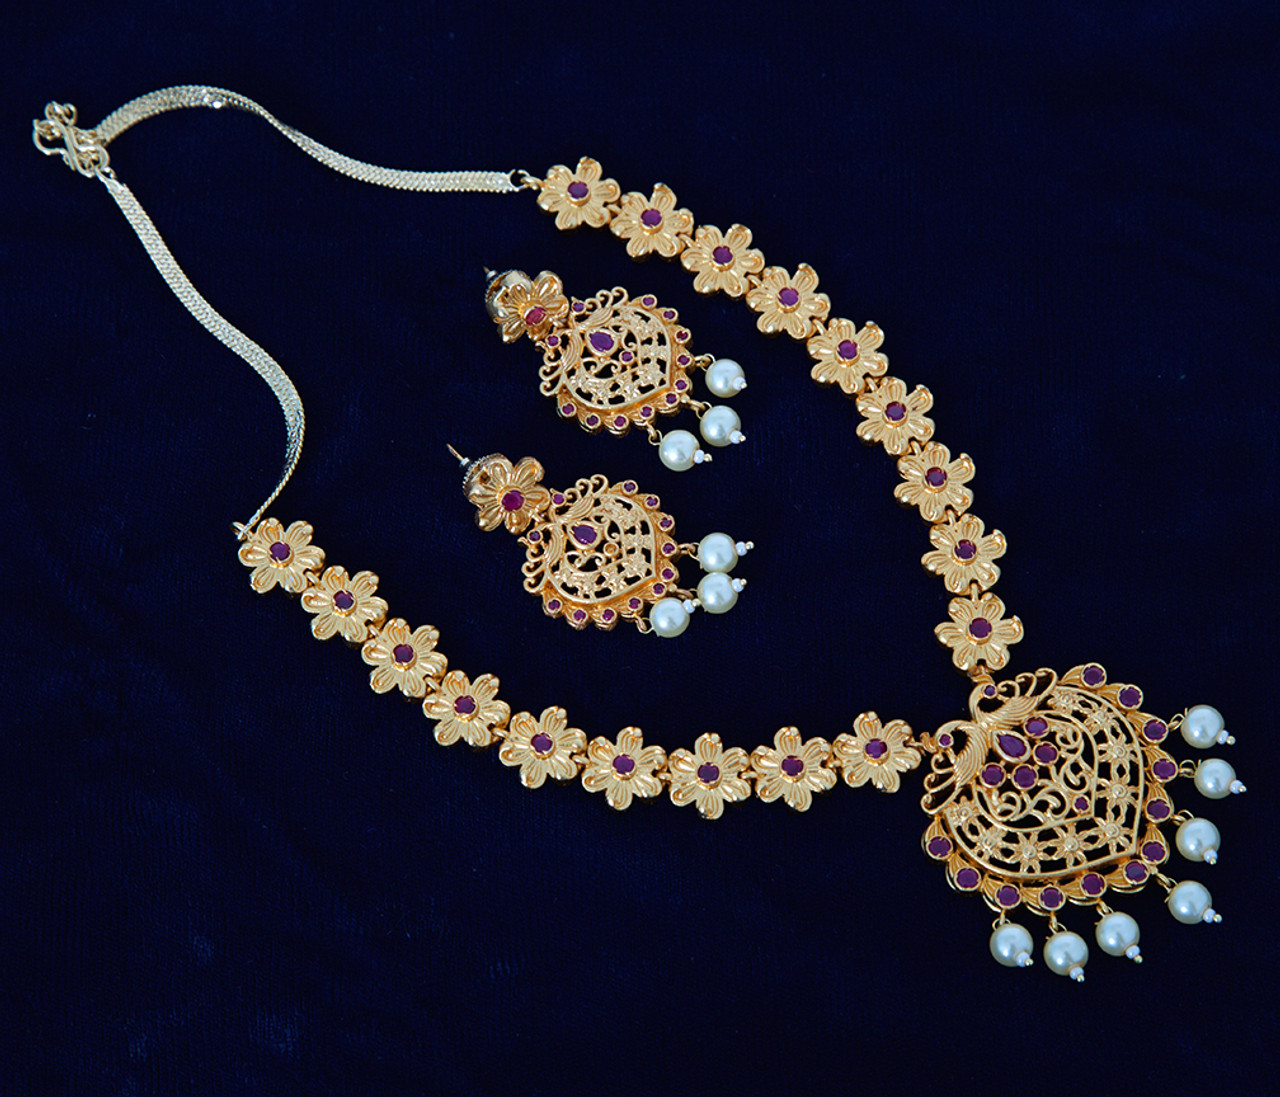 1 Gram Gold Jewelry With Floral Design Indian Designs